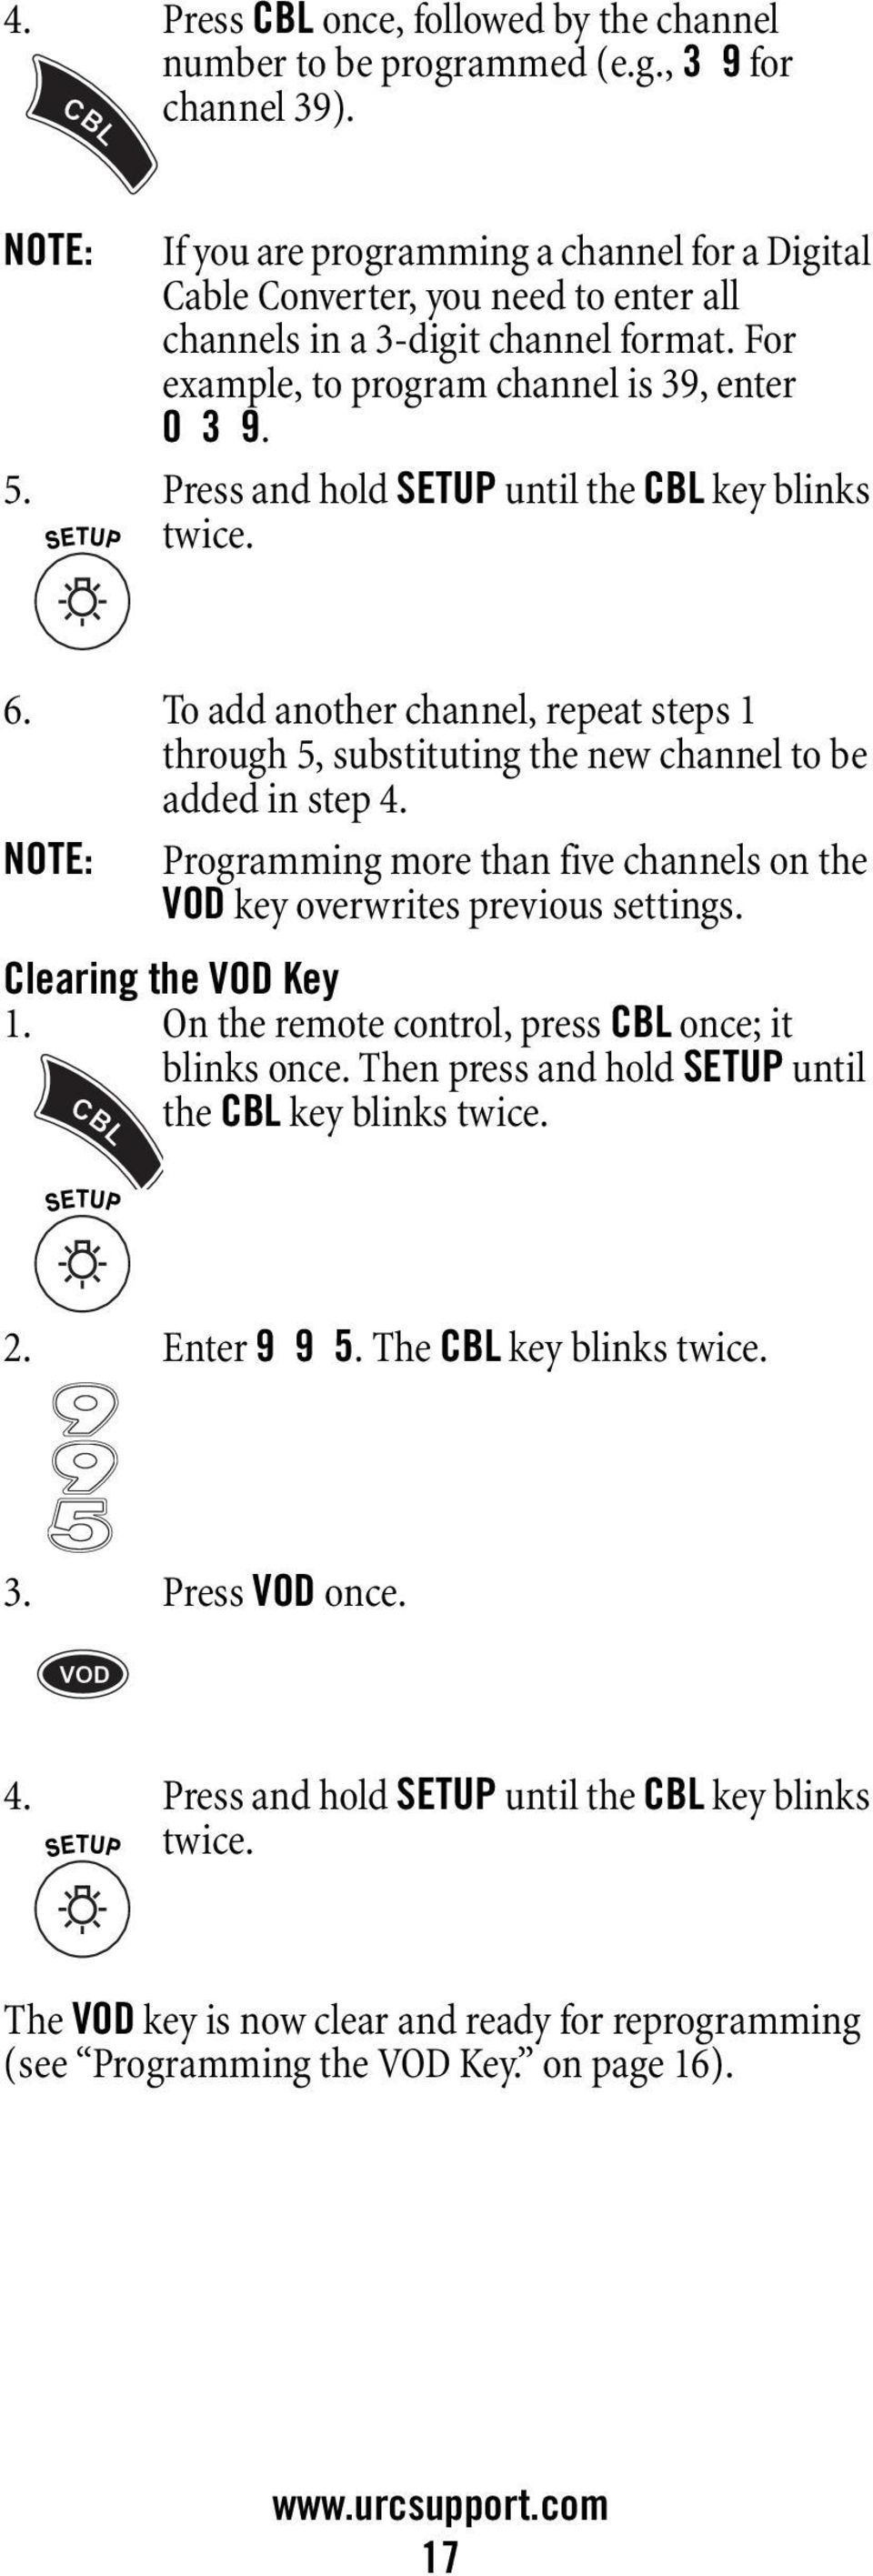 Press and hold SETUP until the CBL key blinks twice. 6. To add another channel, repeat steps 1 through 5, substituting the new channel to be added in step 4.